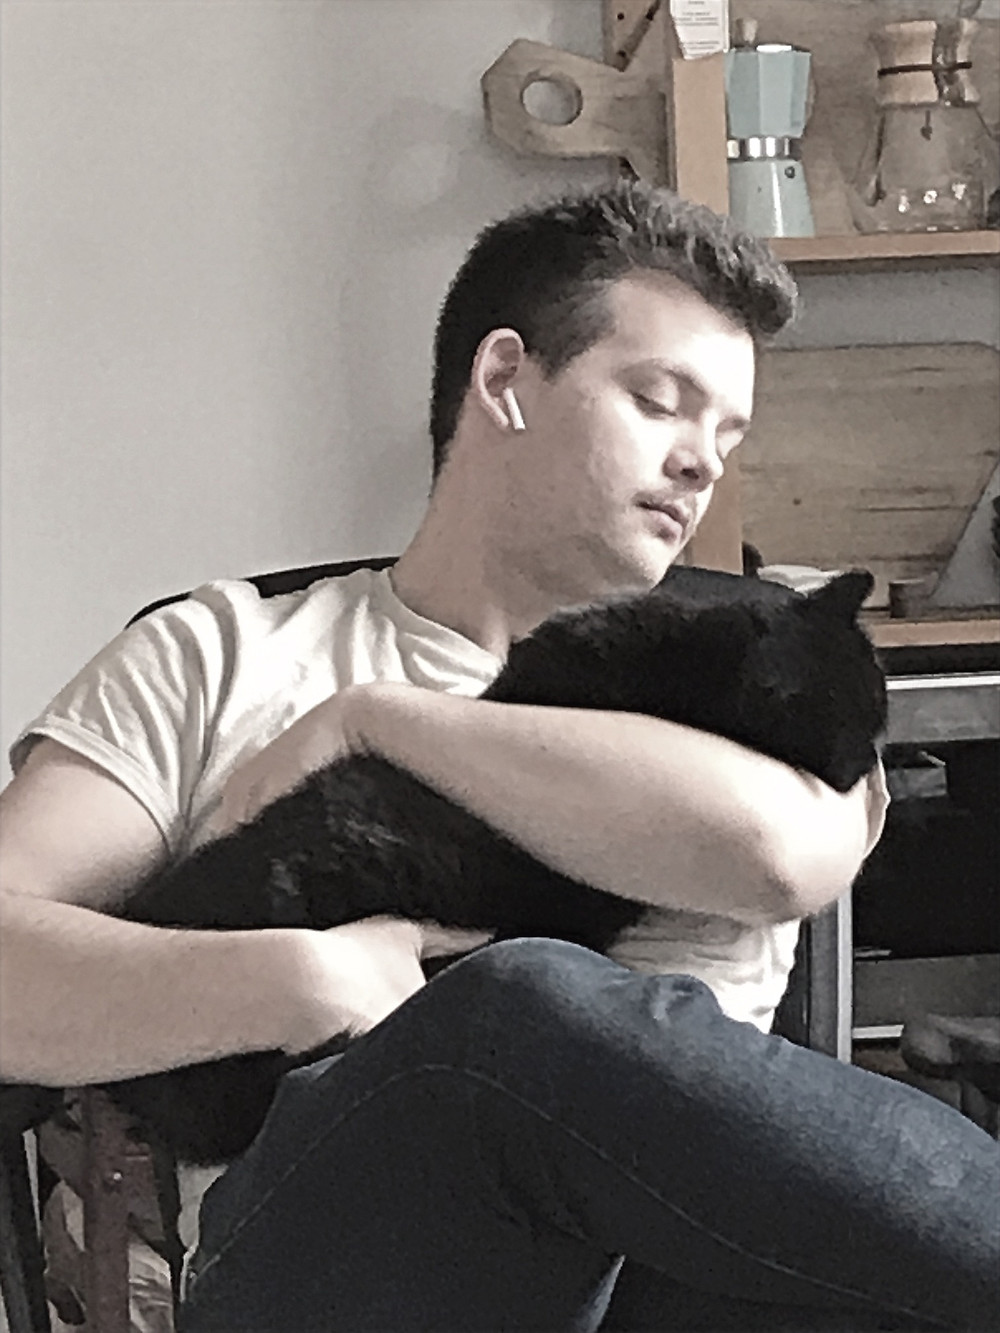 A man lovingly holds his large black cat.